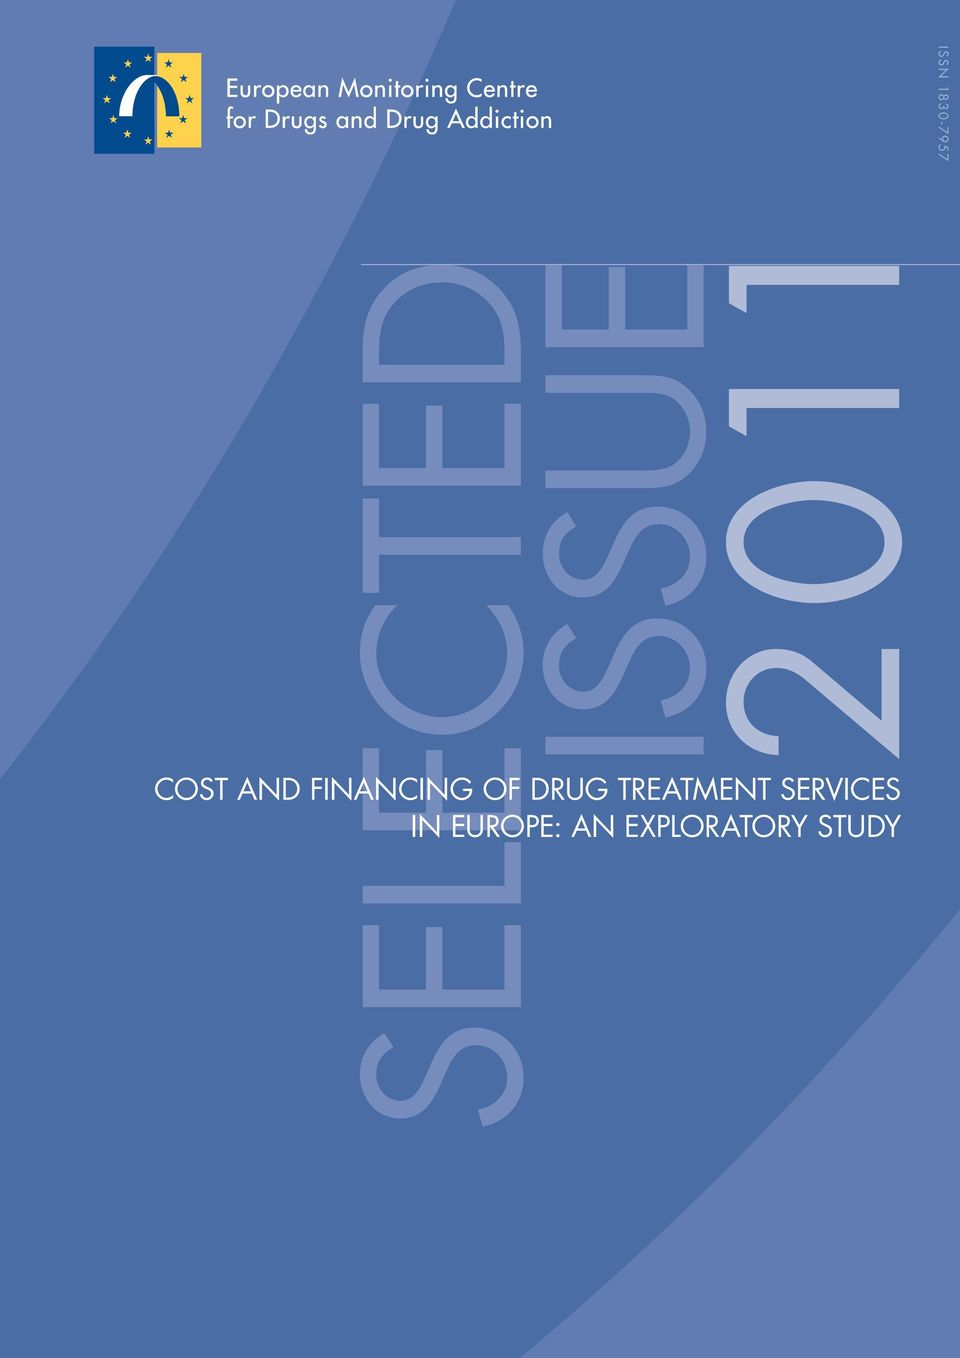 FINANCING OF DRUG TREATMENT